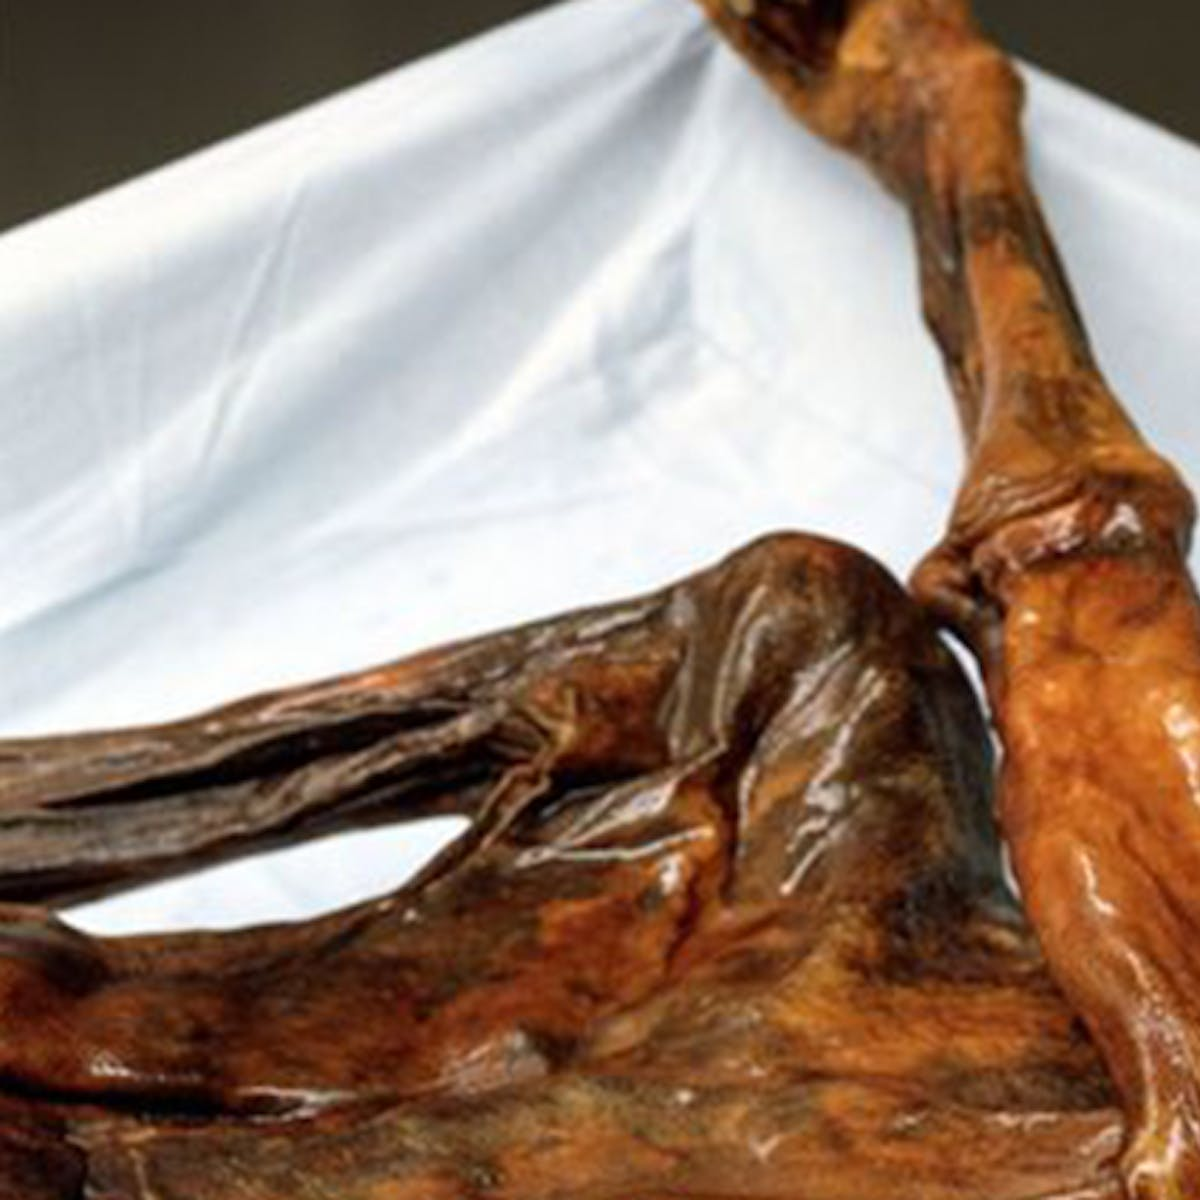 3D Printing Gives Ötzi the Iceman a Plastic and Resin Clone